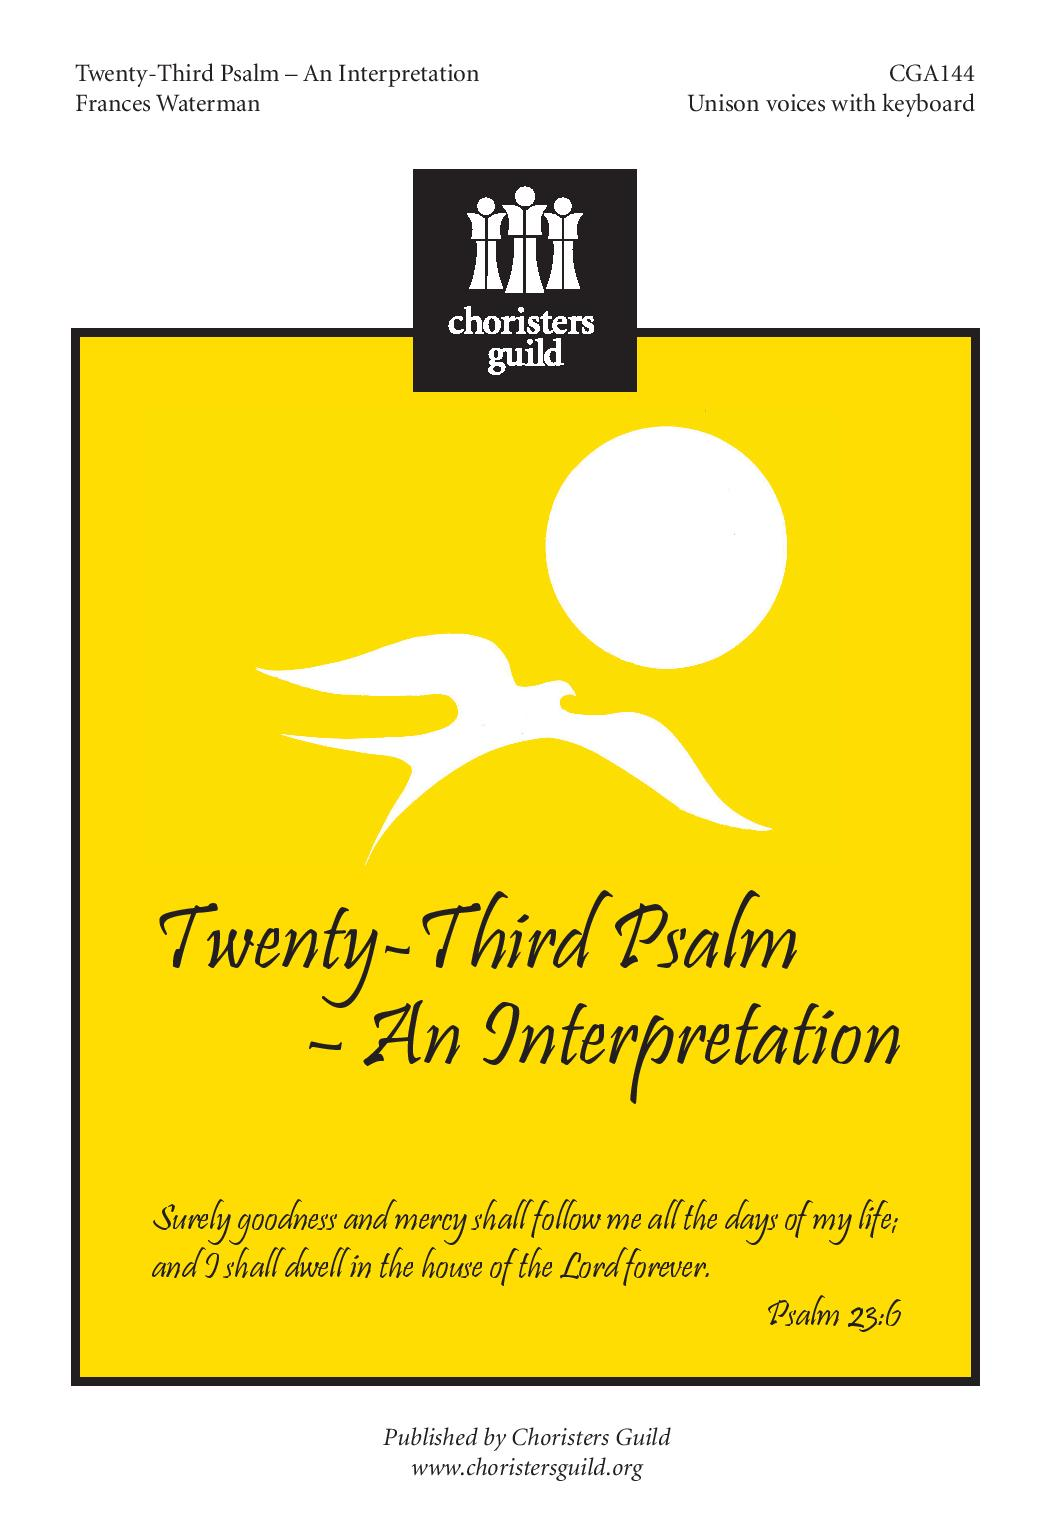 Twenty-Third Psalm - An Interpretation